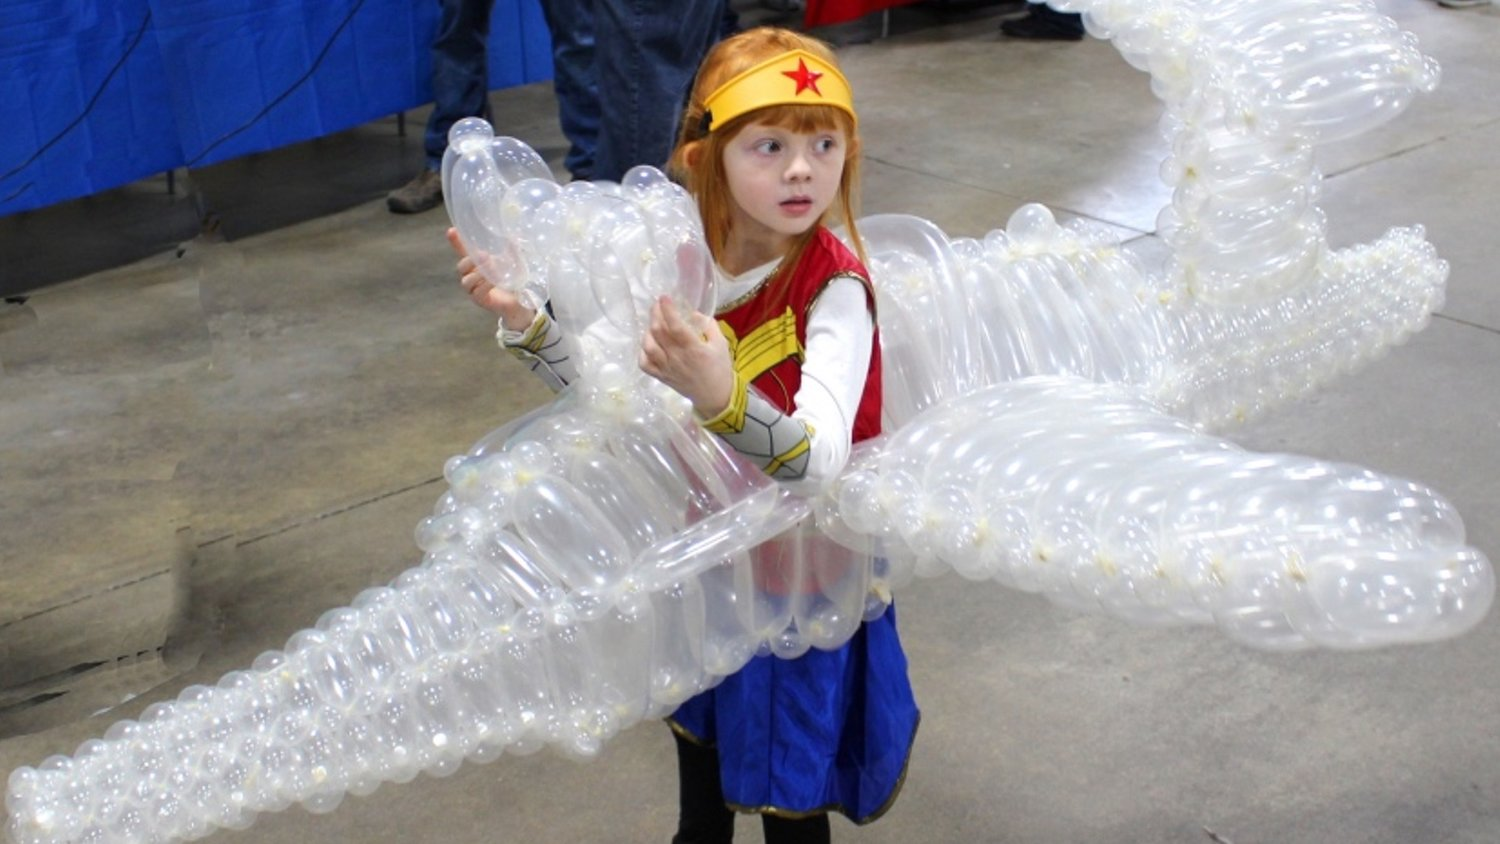 5-Year-Old Girl Cosplays Wonder Woman, Invisible Jet Included